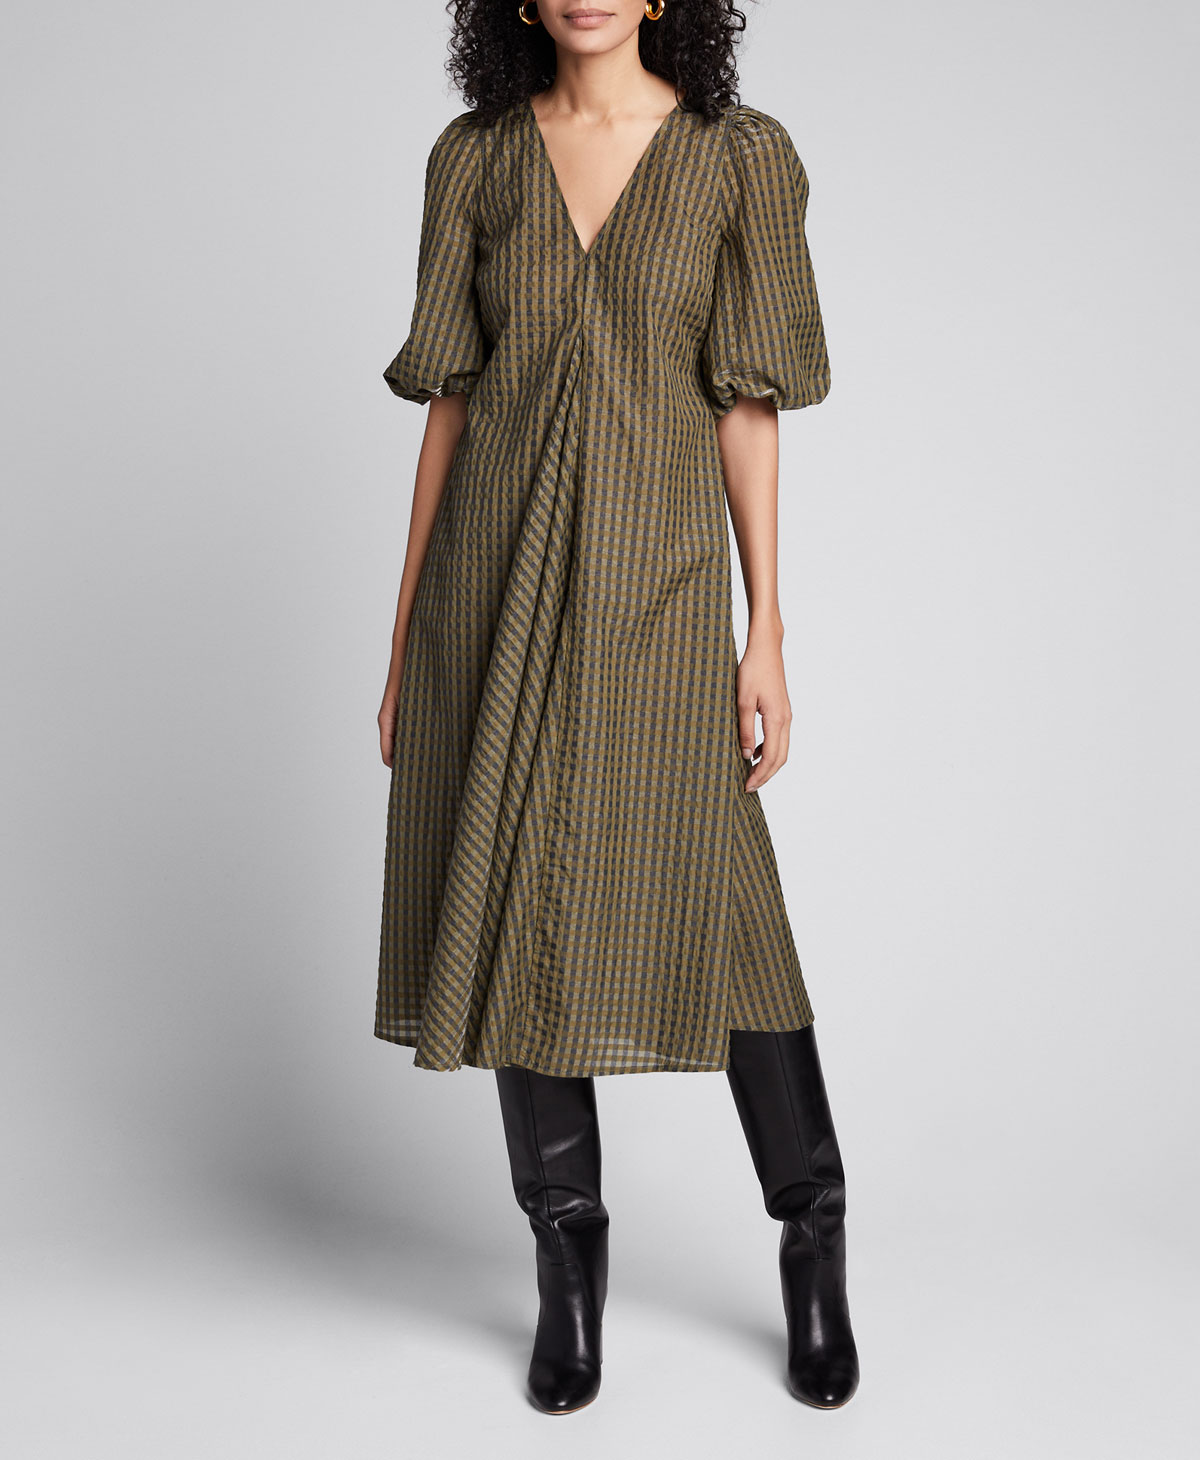 Ganni Seersucker Check Puff Sleeve Midi Dress Bergdorf Goodman